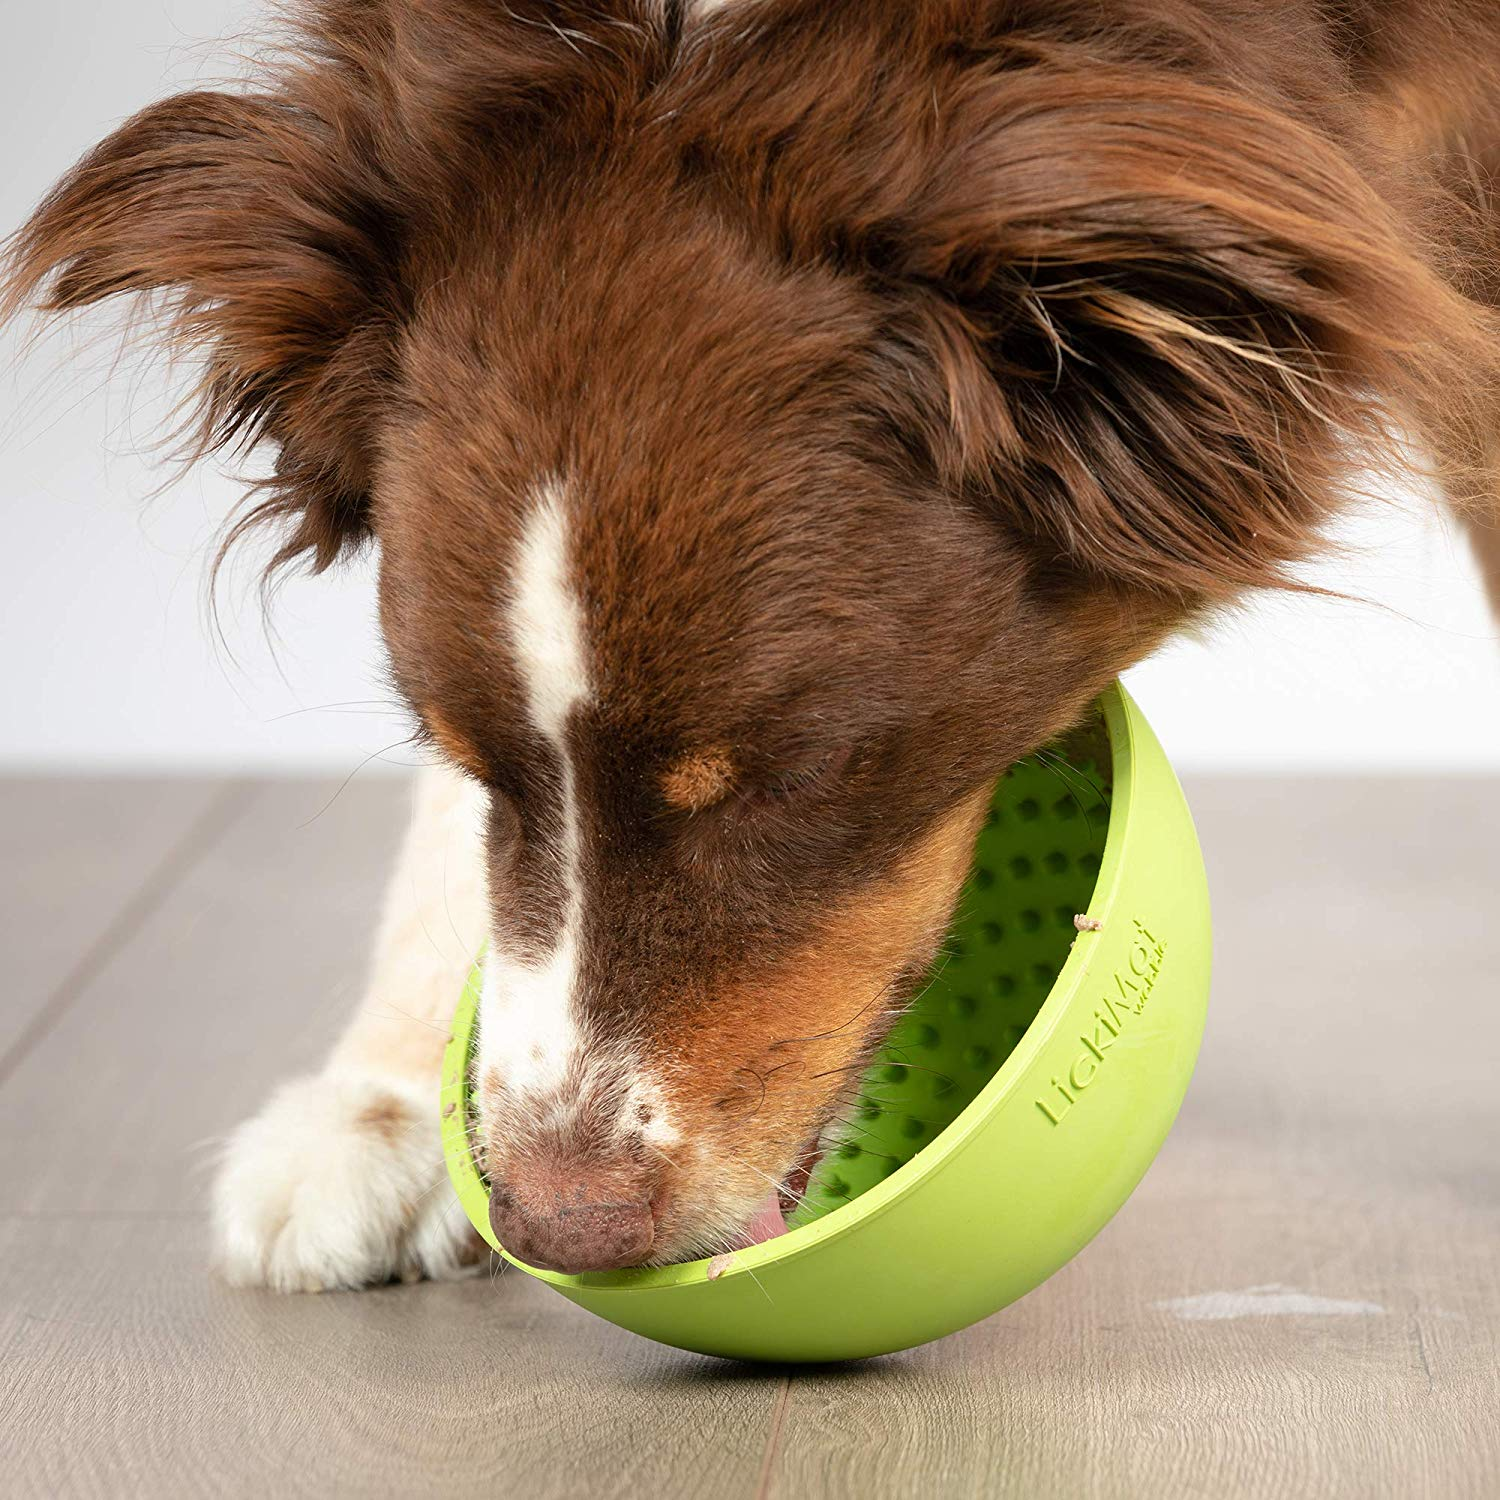 Hyper Pet Lickimat Wobble - Slow Feeder, Anxiety Relief, Boredom Buster for dogs and cats